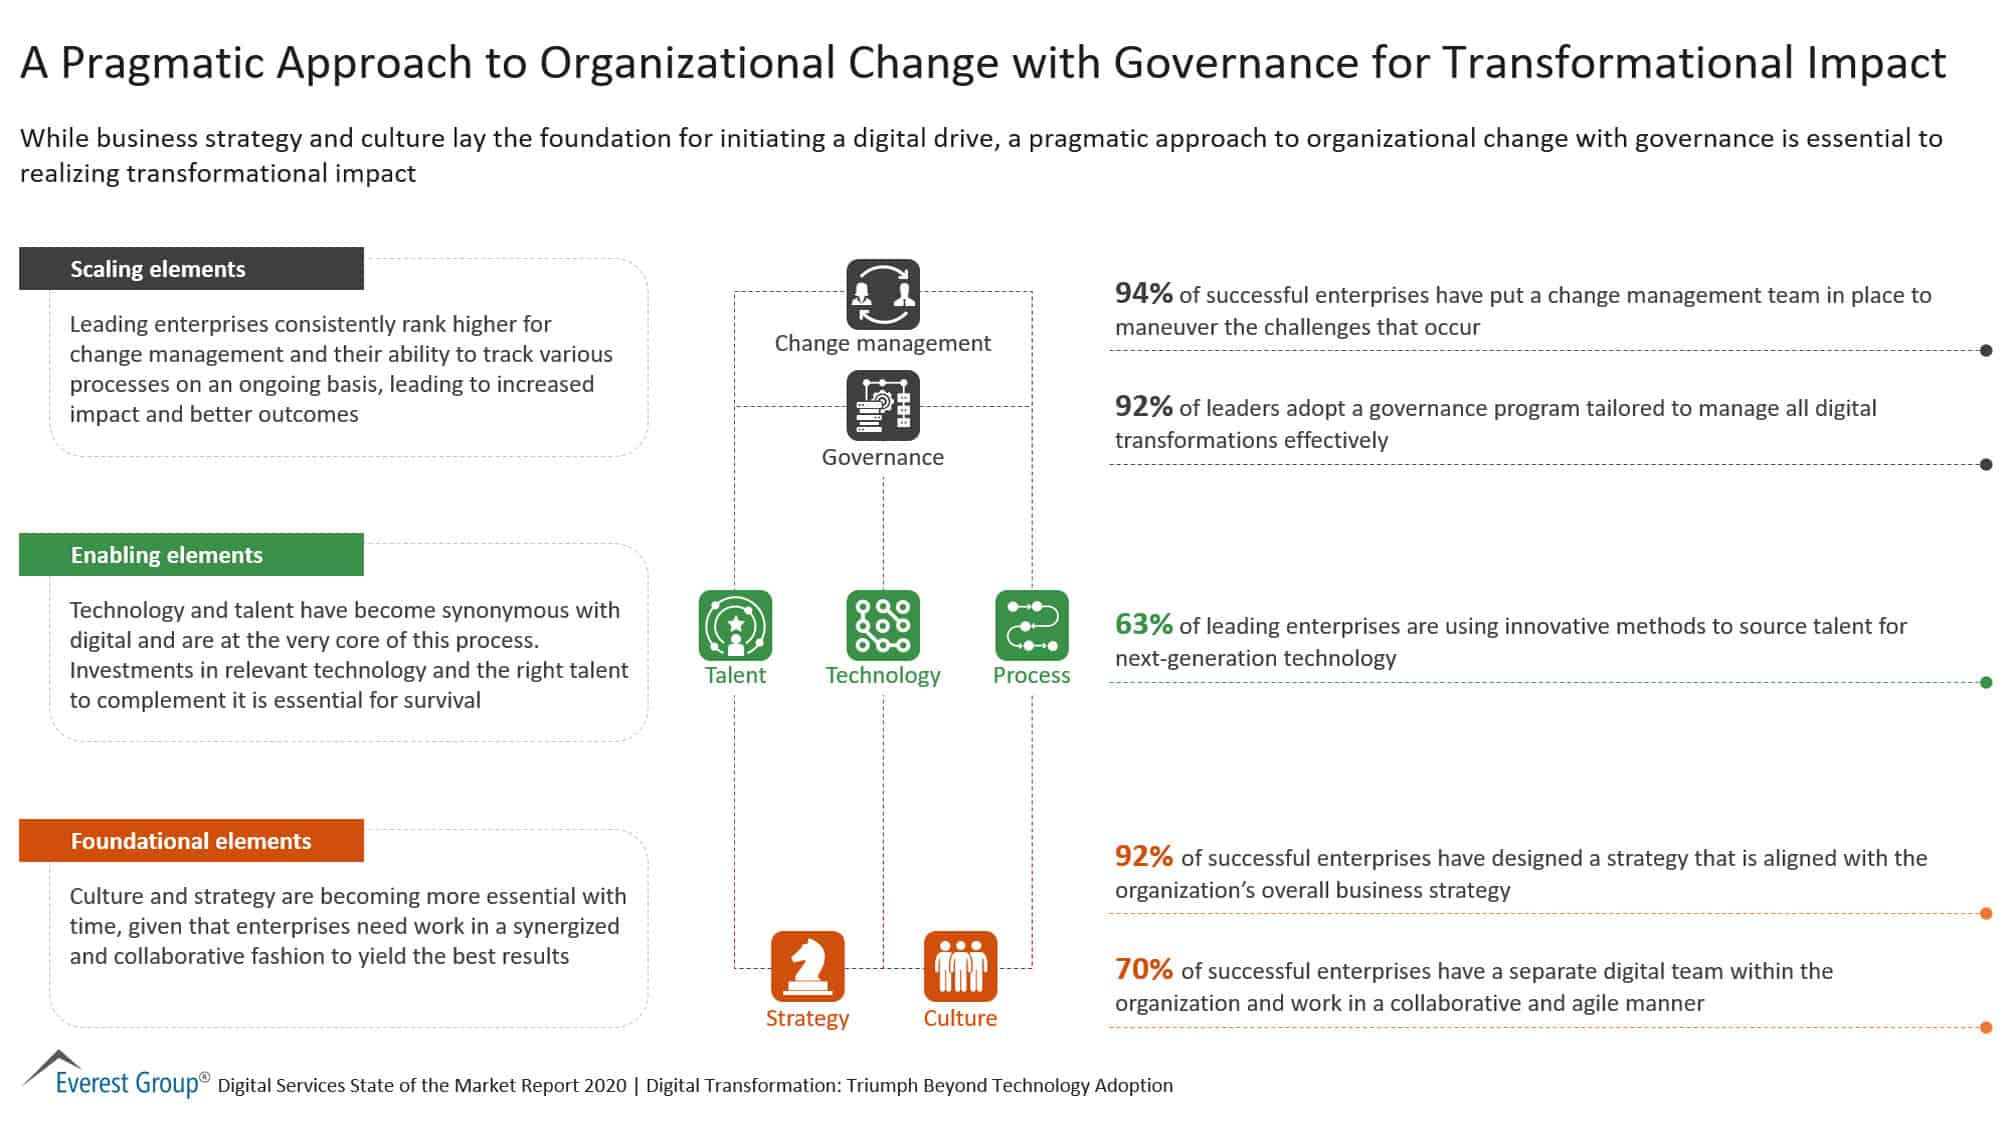 A Pragmatic Approach to Organizational Change with Governance for Transformational Impact